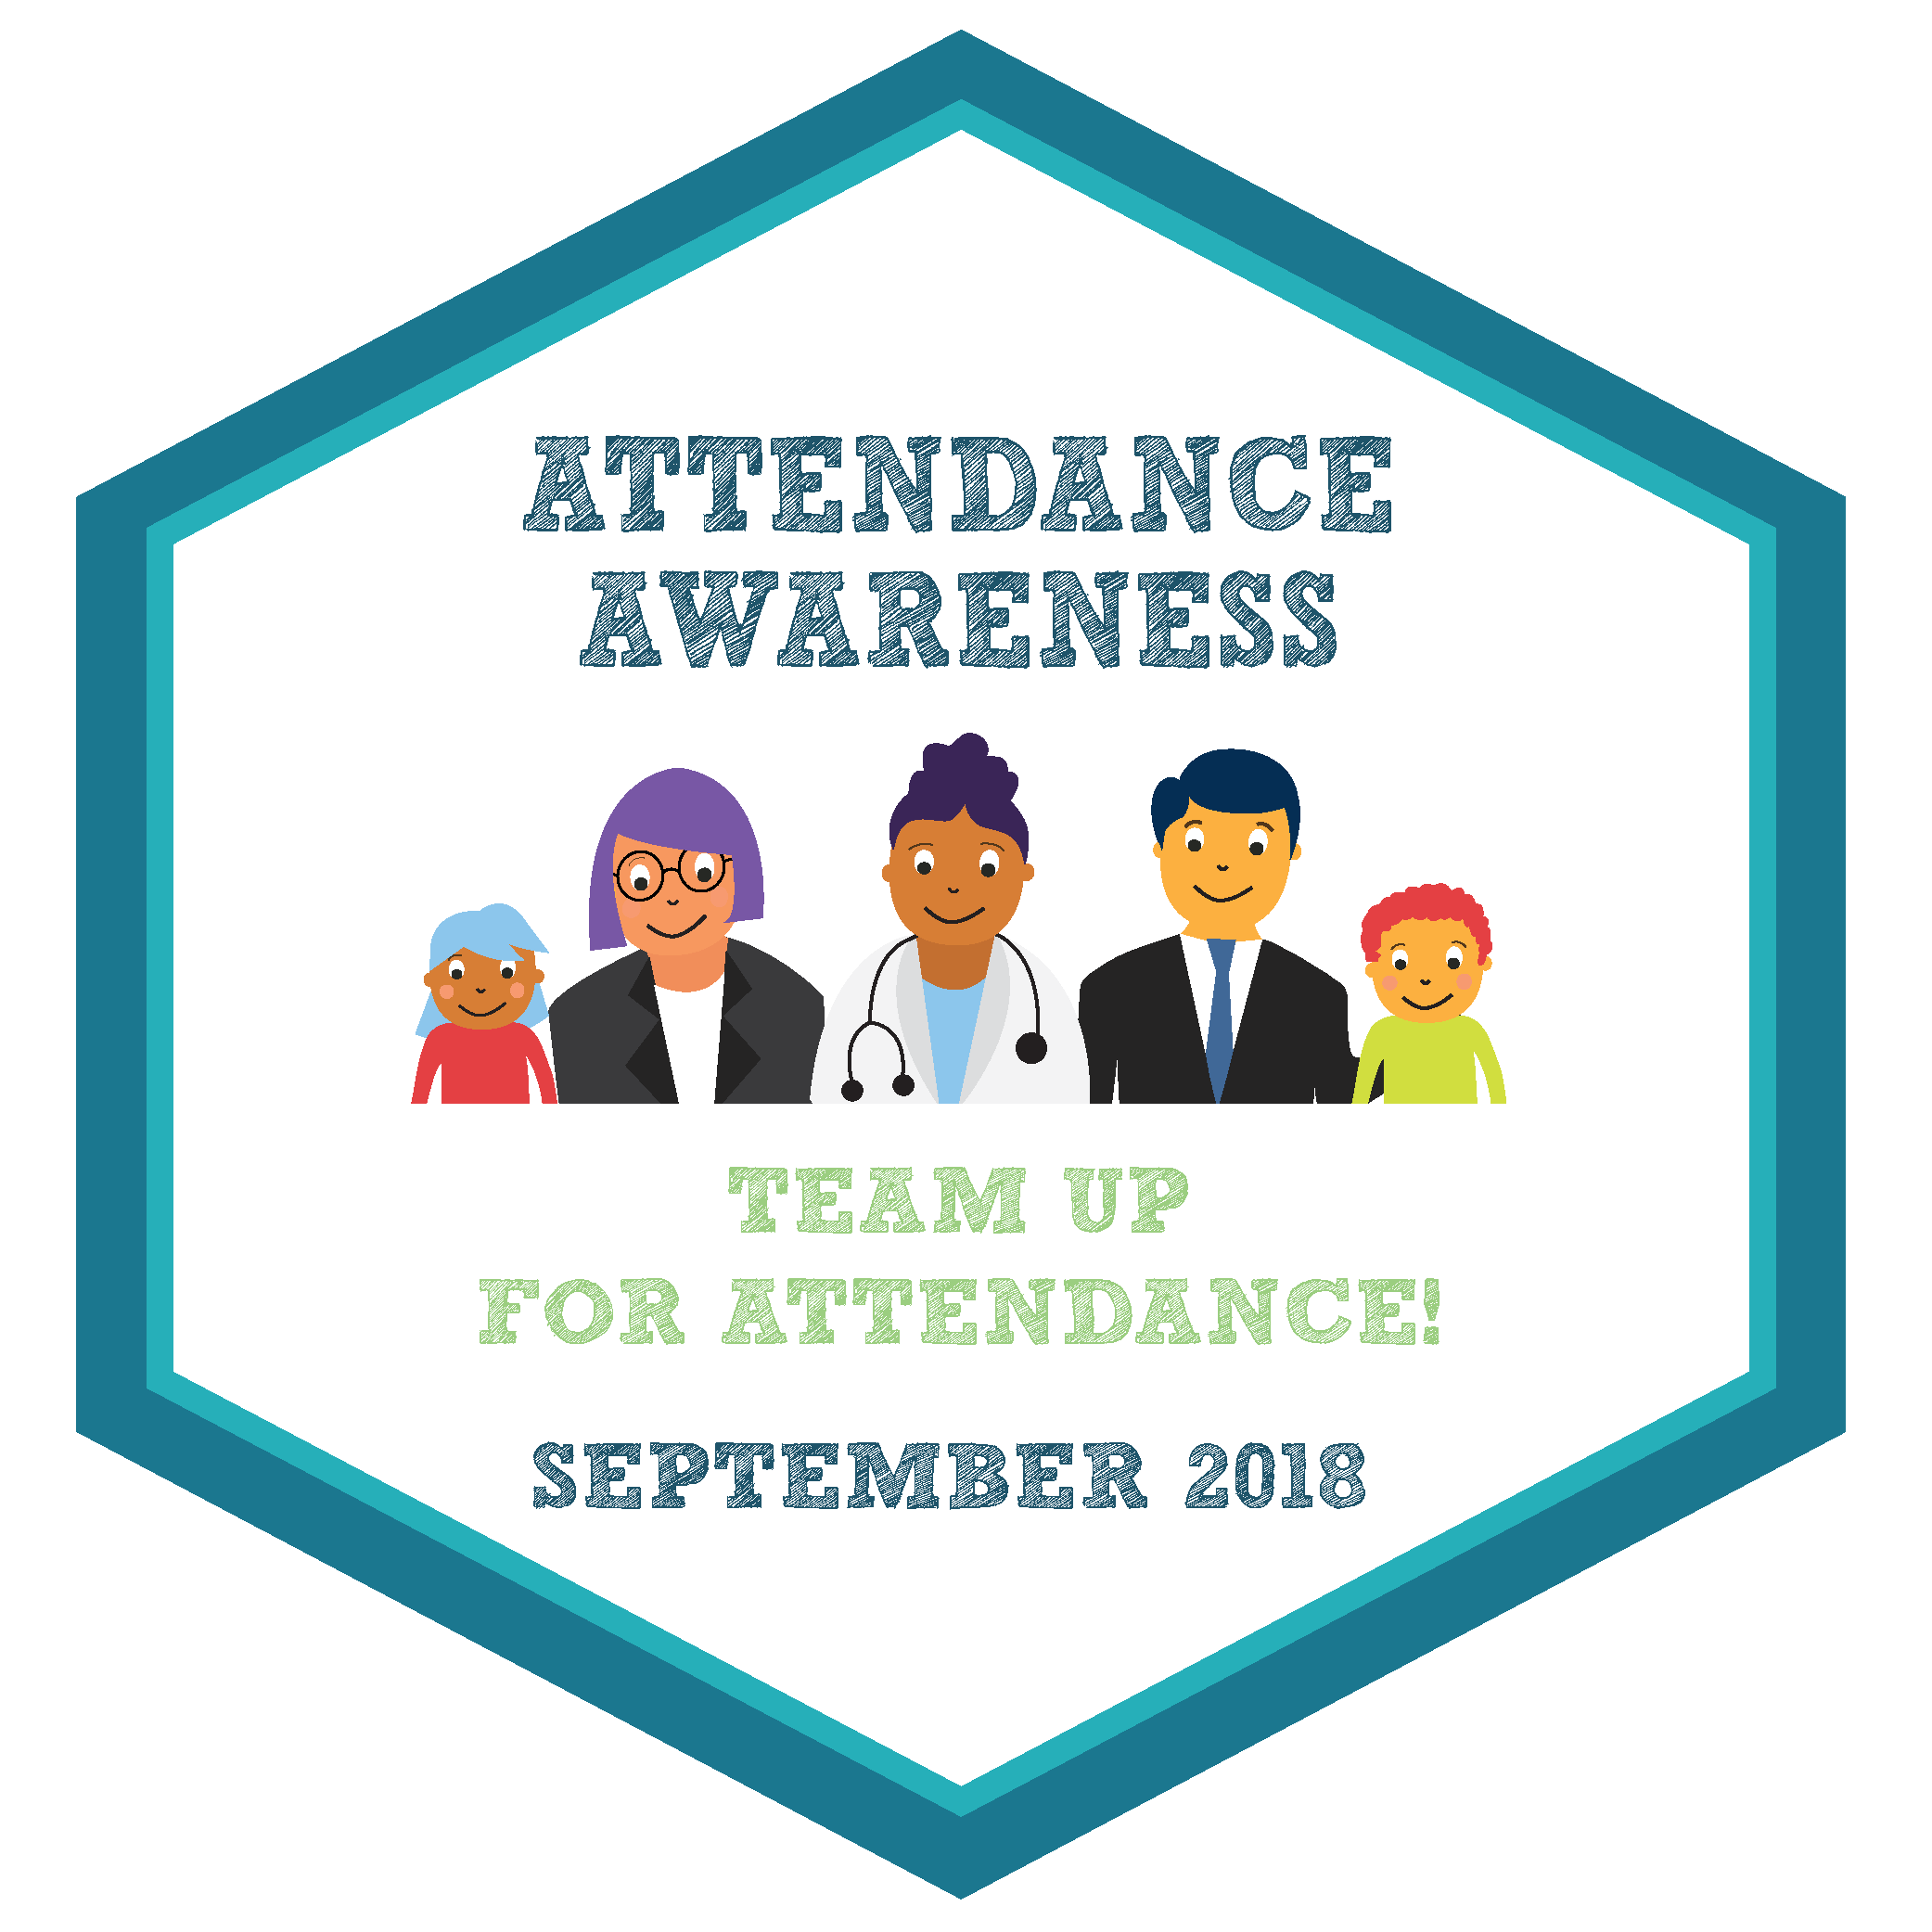 Attendance Awareness, Team up for Attendance, September 2018